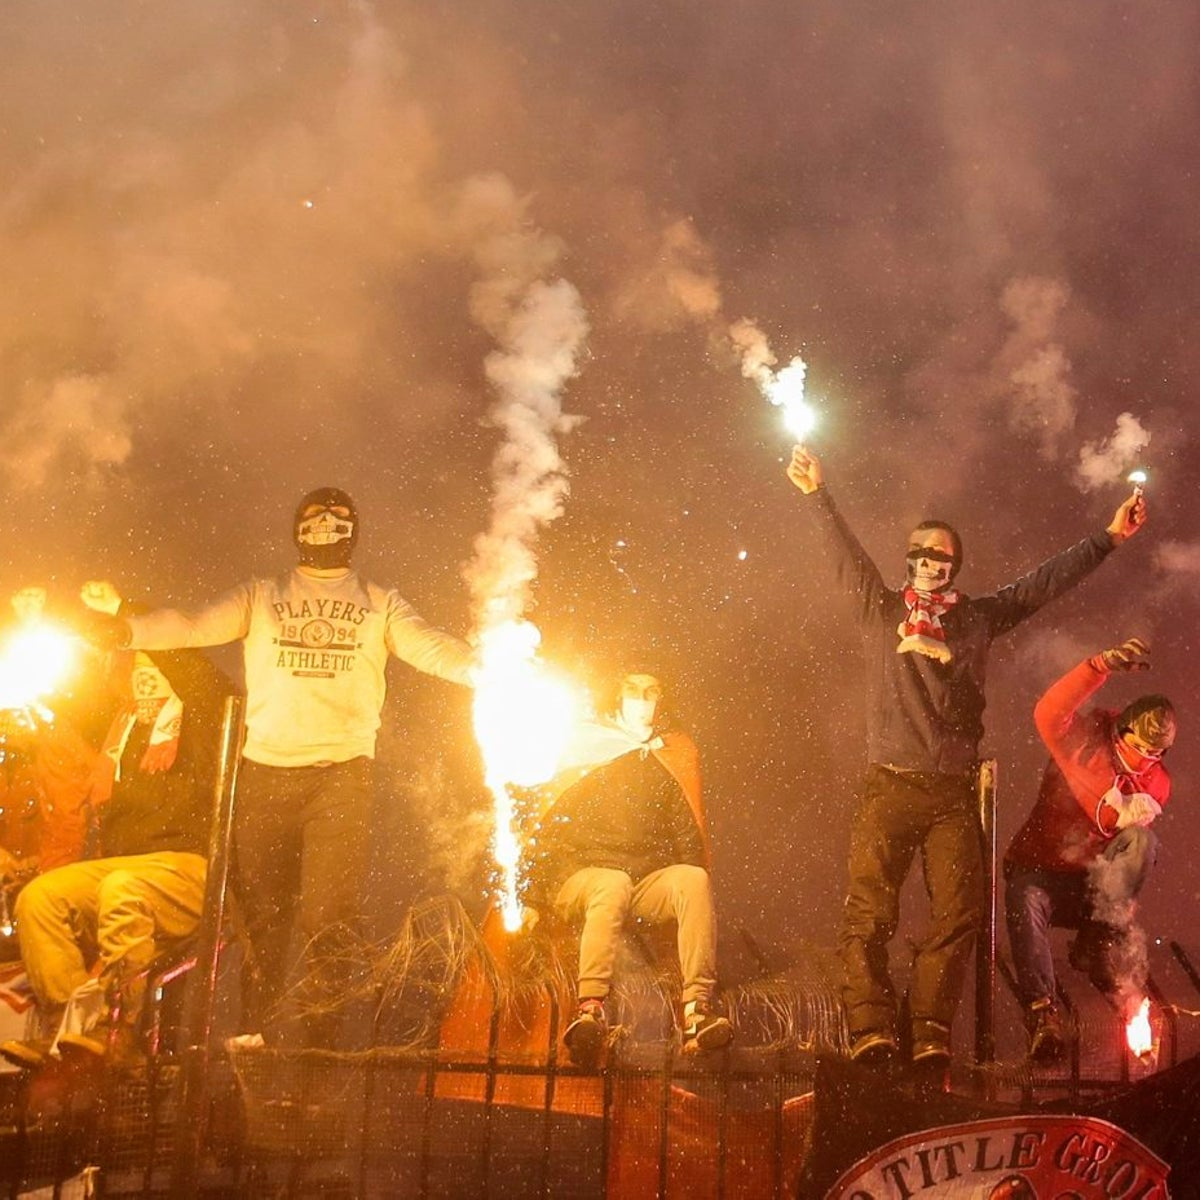 Russian soccer fans of the Spartak team burn flares during a Russian Premier League Championship soccer match between Arsenal Tula and Spartak Moscow in Tula, Russia, Dec. 1, 2017.